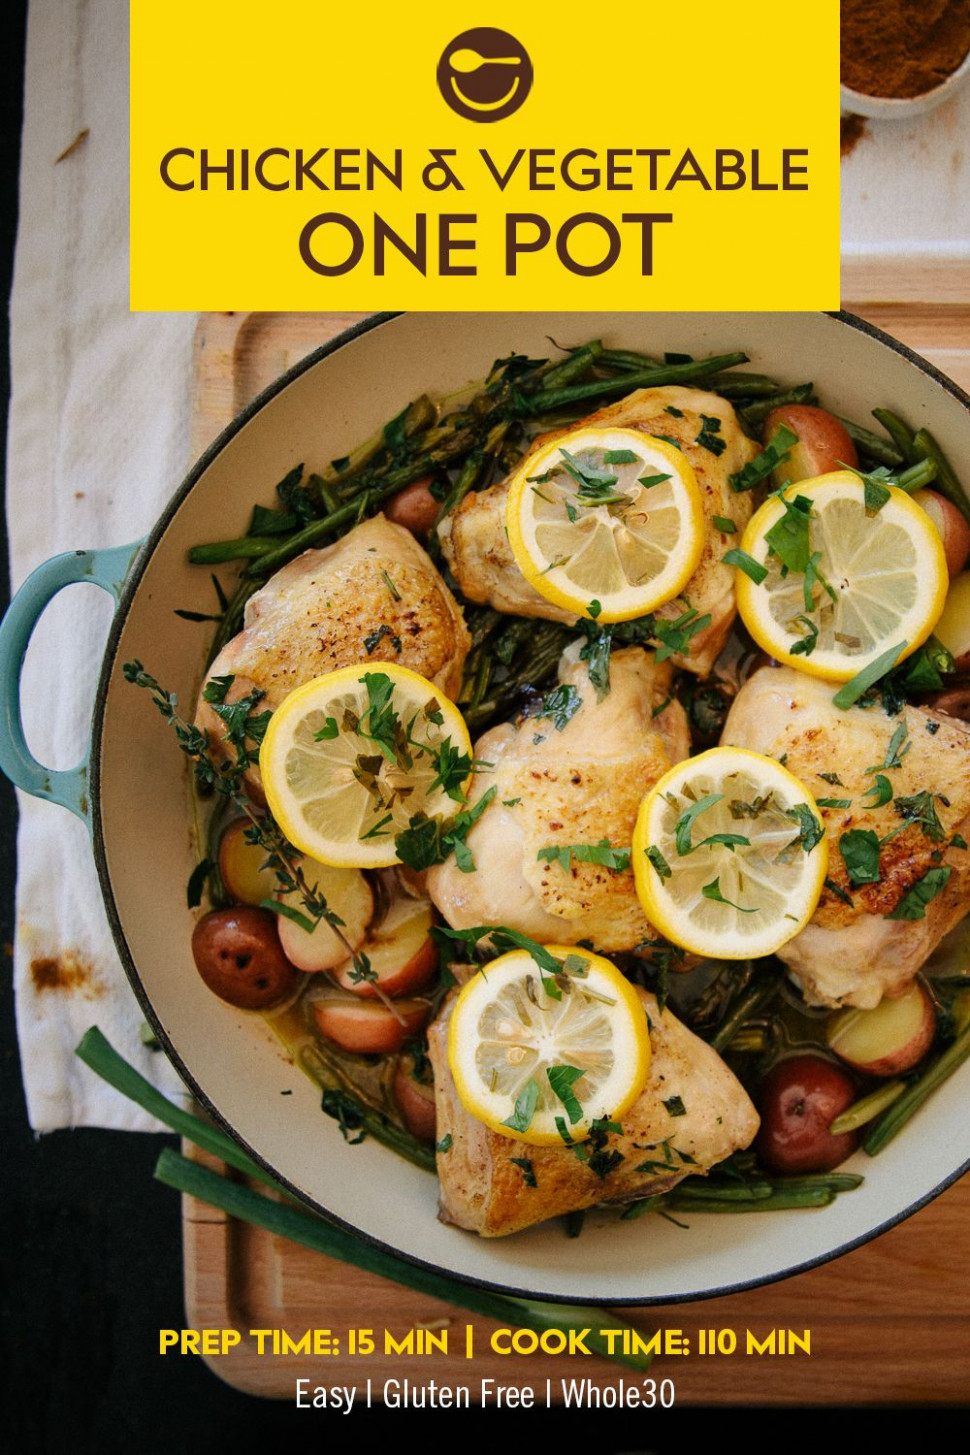 Chicken And Vegetable One Pot - Chicken And Vegetable Recipes